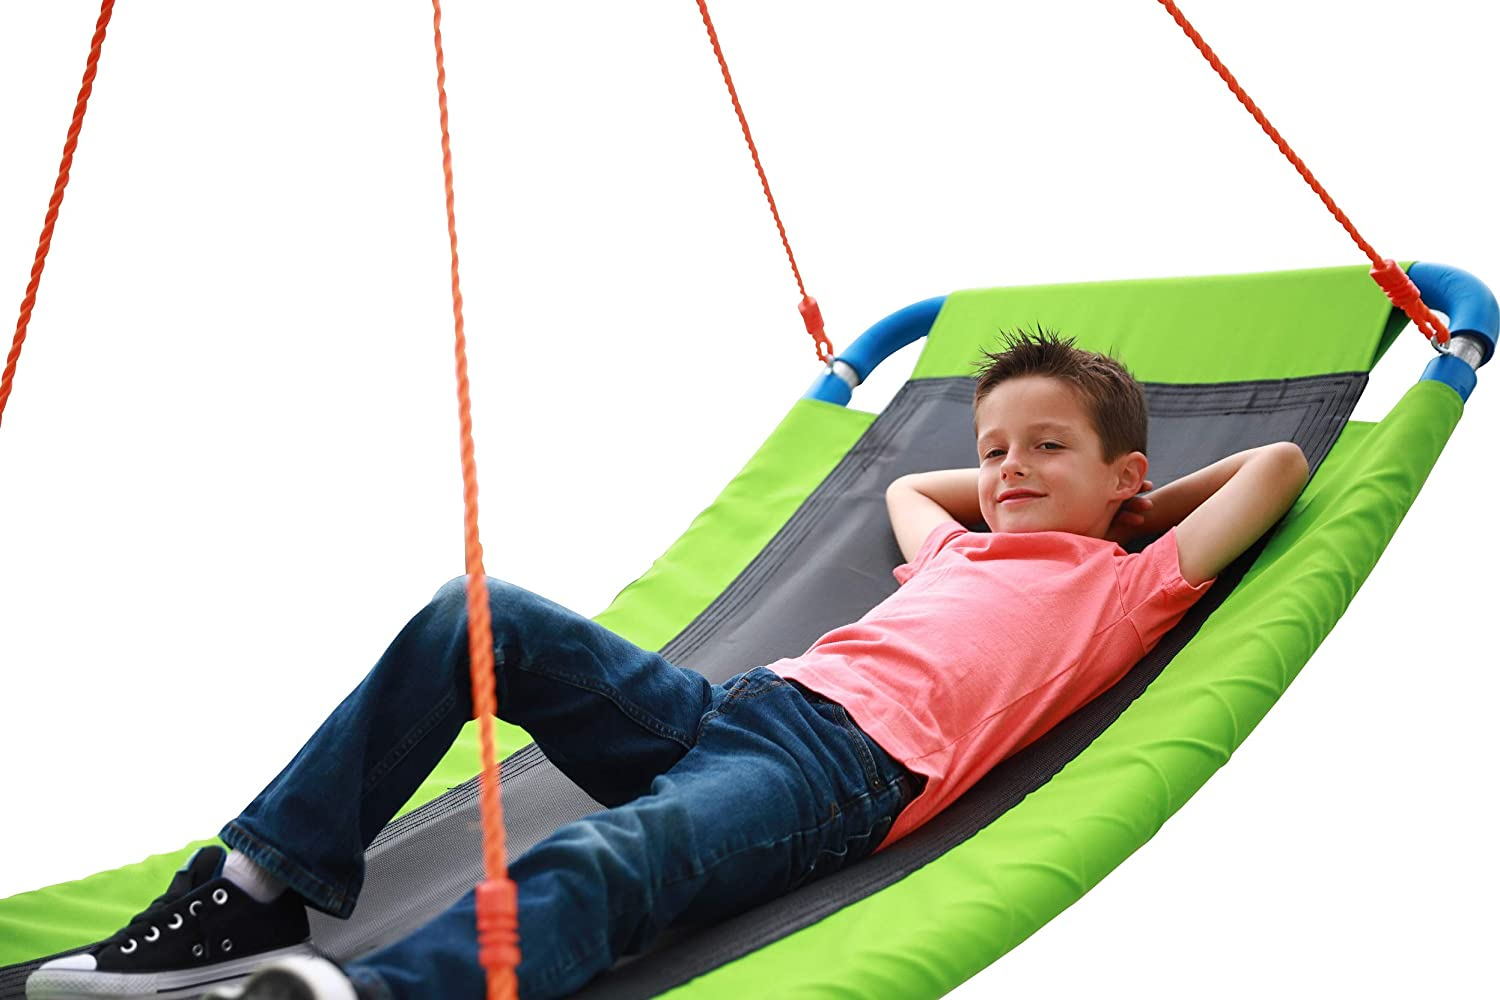 """Giant Outdoor Platform Swing - Large 34"""" x 60"""" Swing in Green - 700 lb Weight Capacity - Durable Steel Frame - Waterproof - Adjustable Ropes - Easy to Install - Fun for Kids, Adults, Friends"""